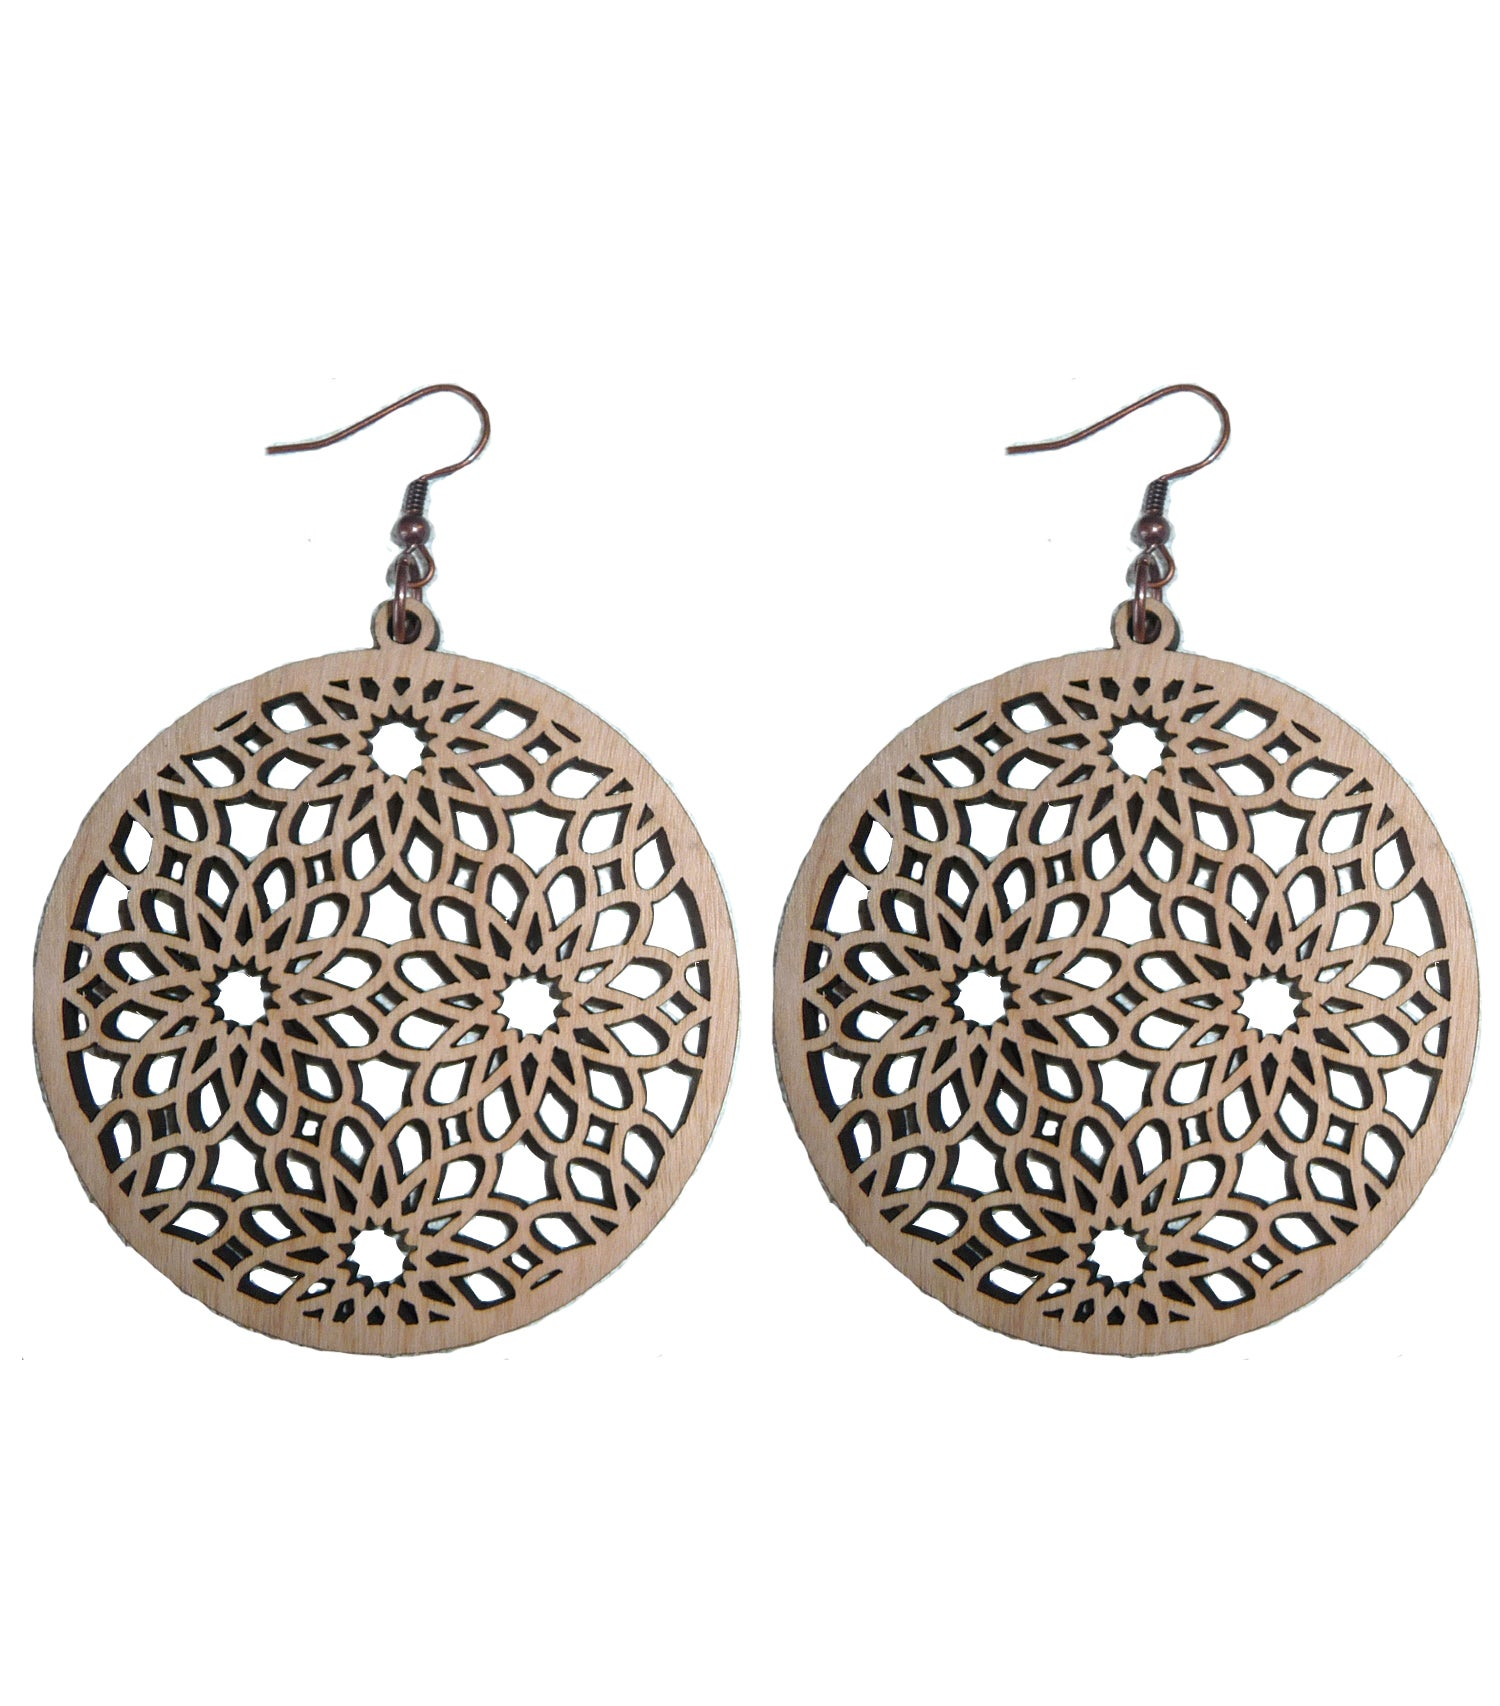 Image of MAHOGANY WOOD LASER CUT EARRINGS WOOD AND COPPER COSMOS